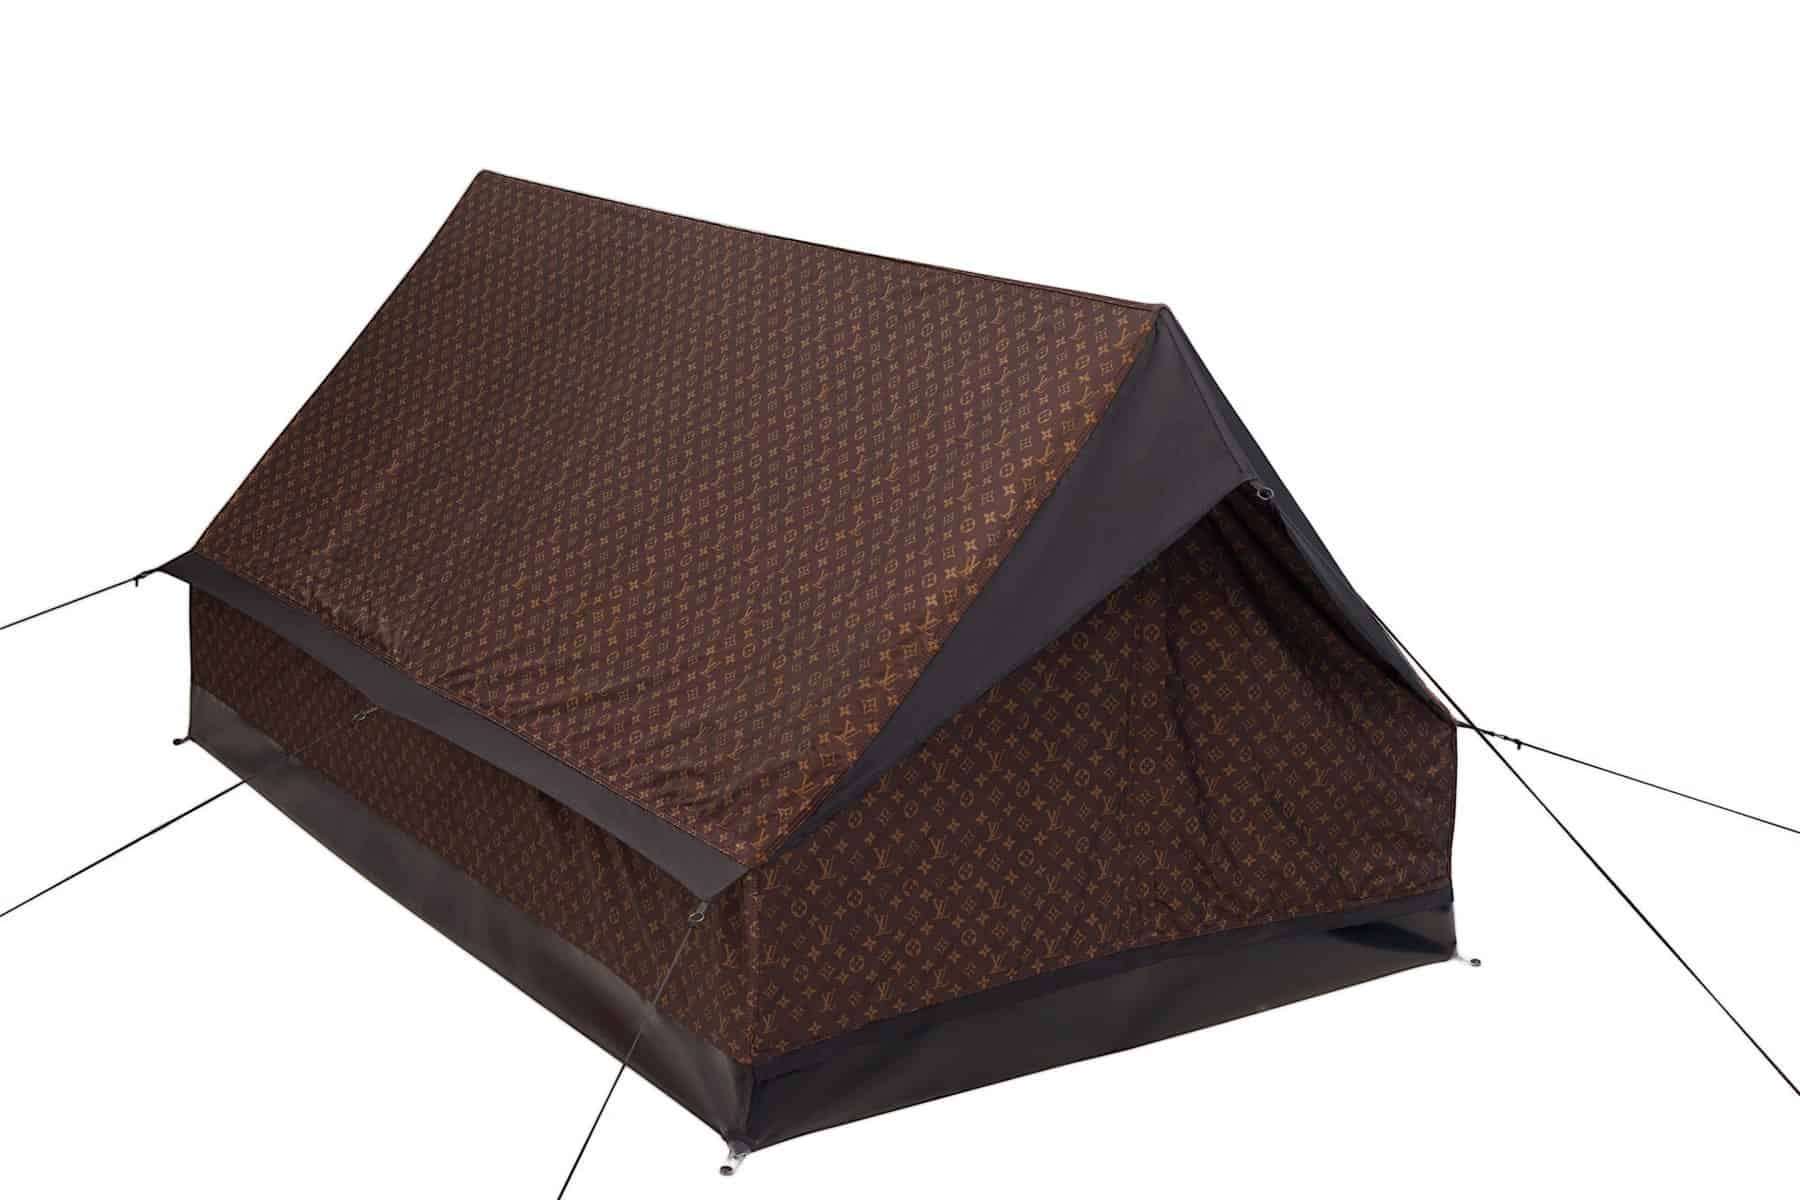 Louis Vuitton camping tent 6